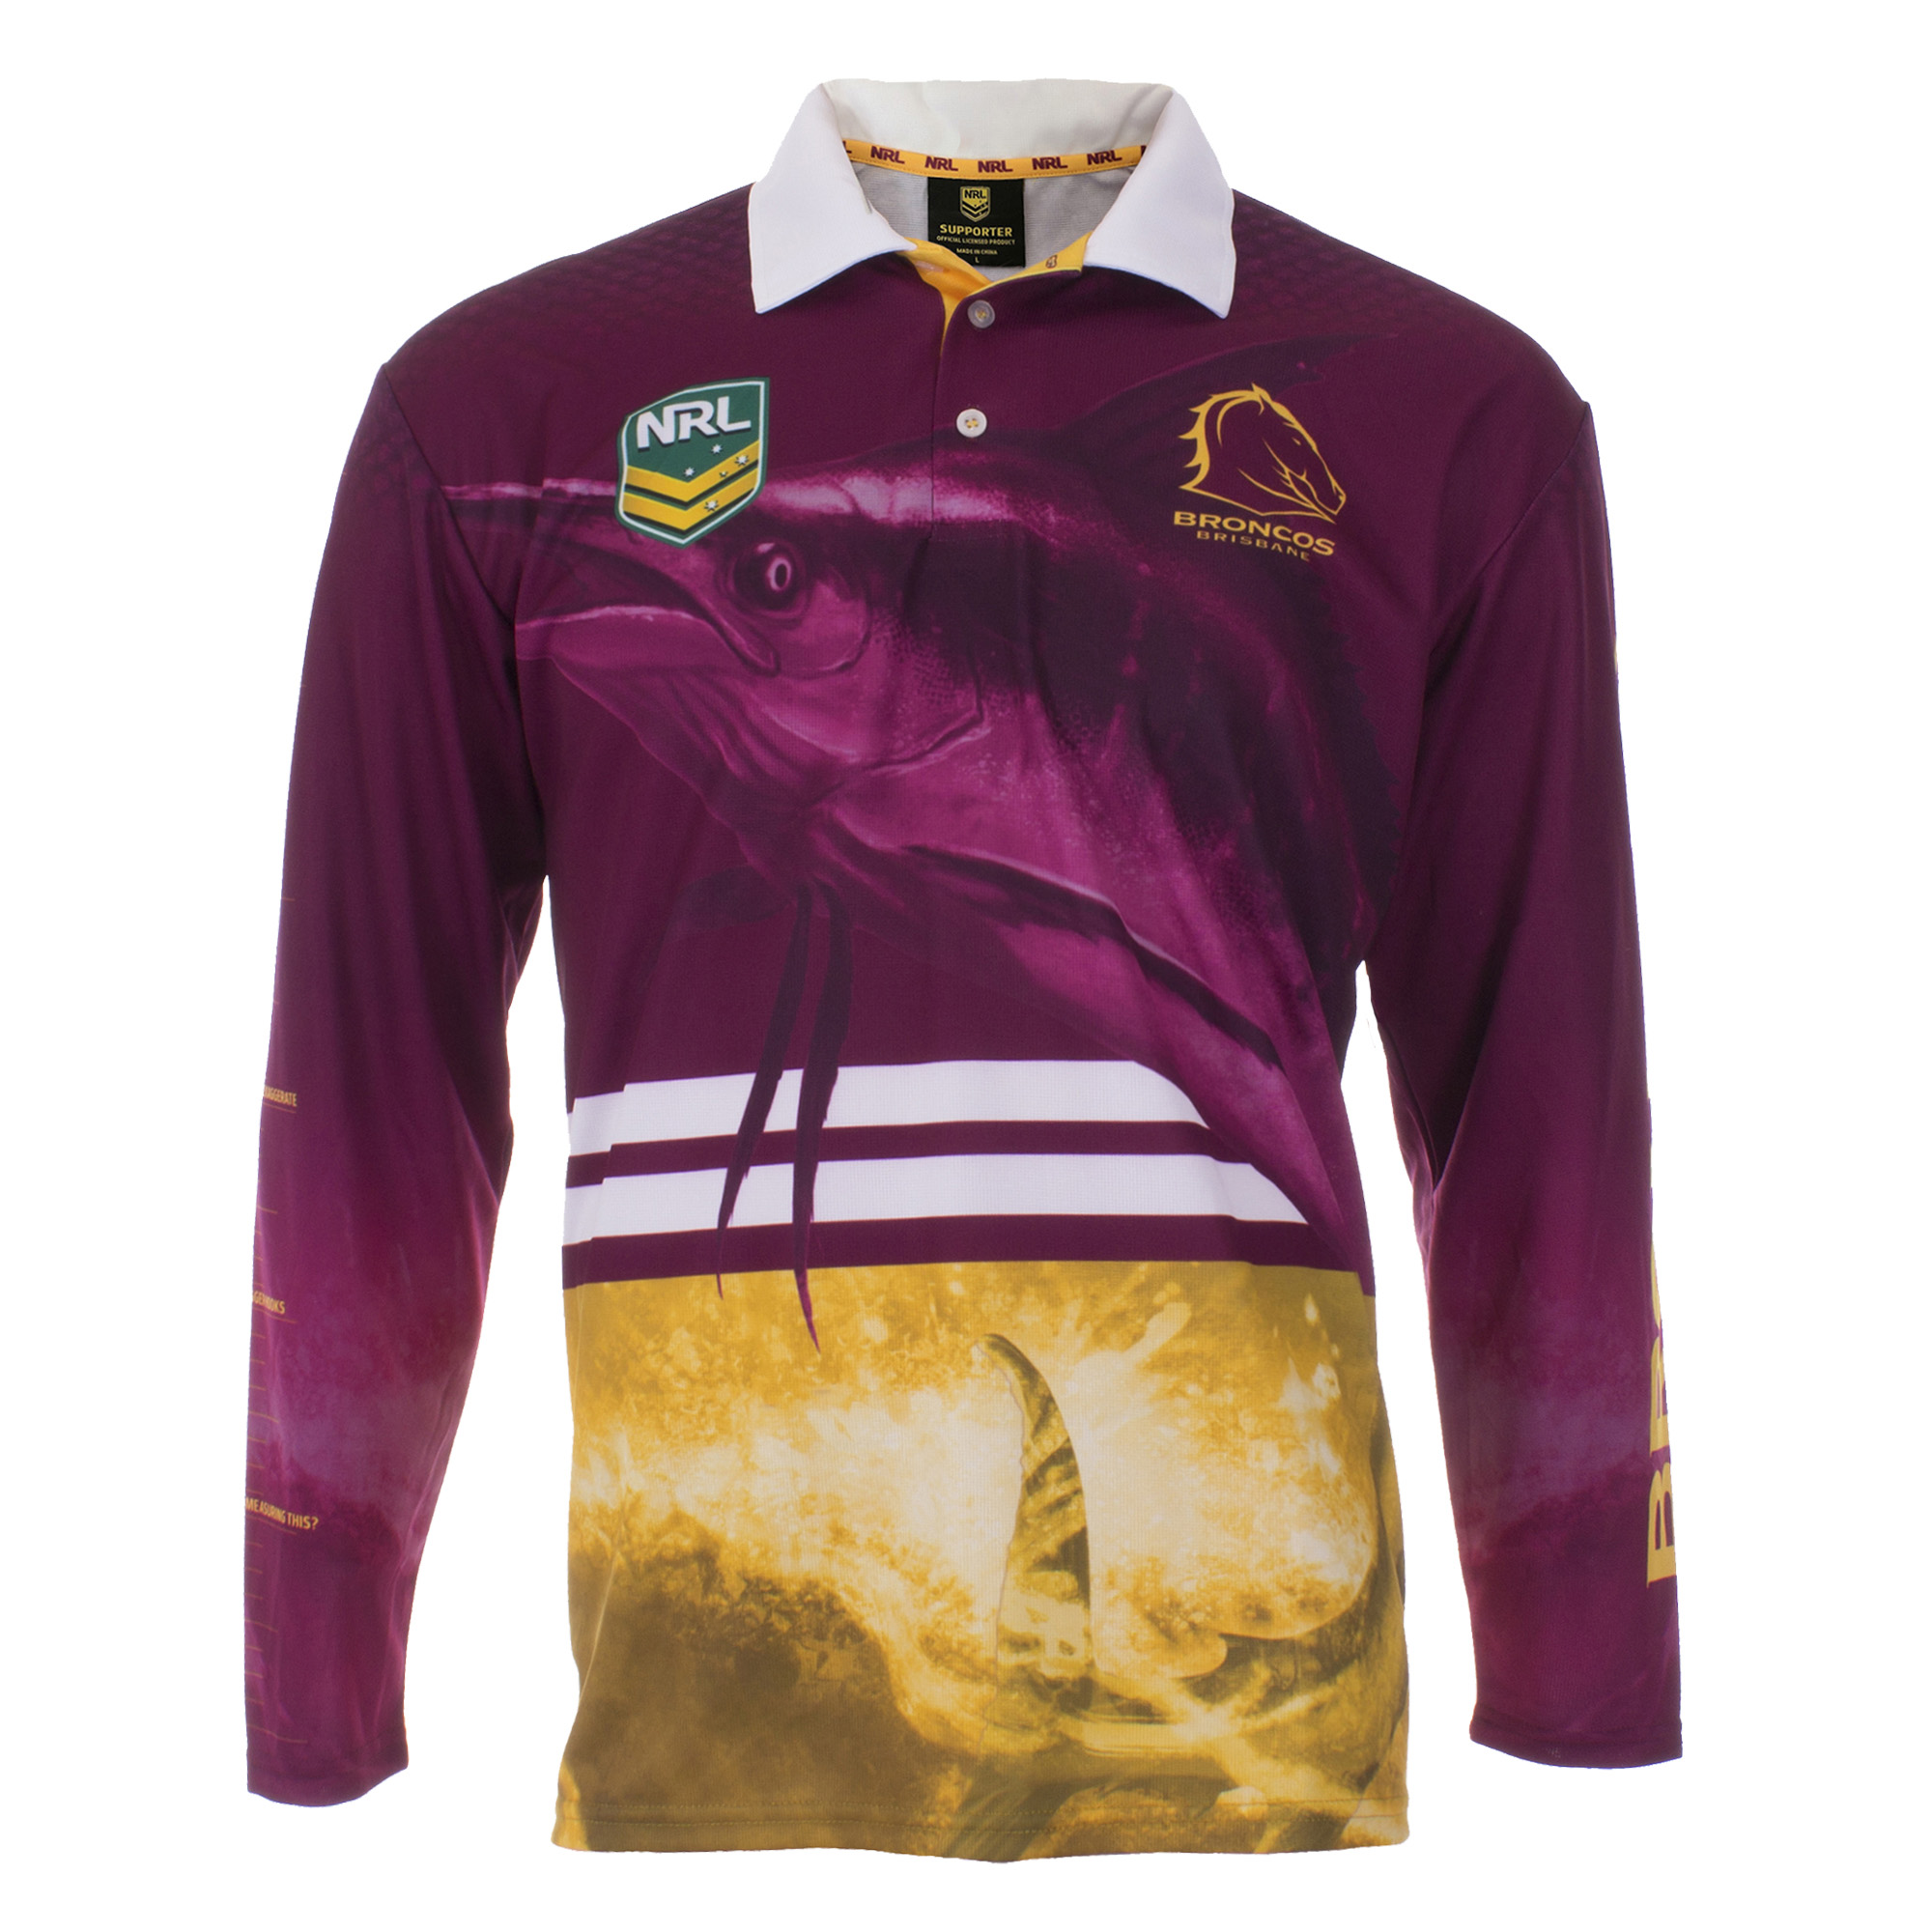 Personalised NRL Broncos Fishing Shirt - Front View